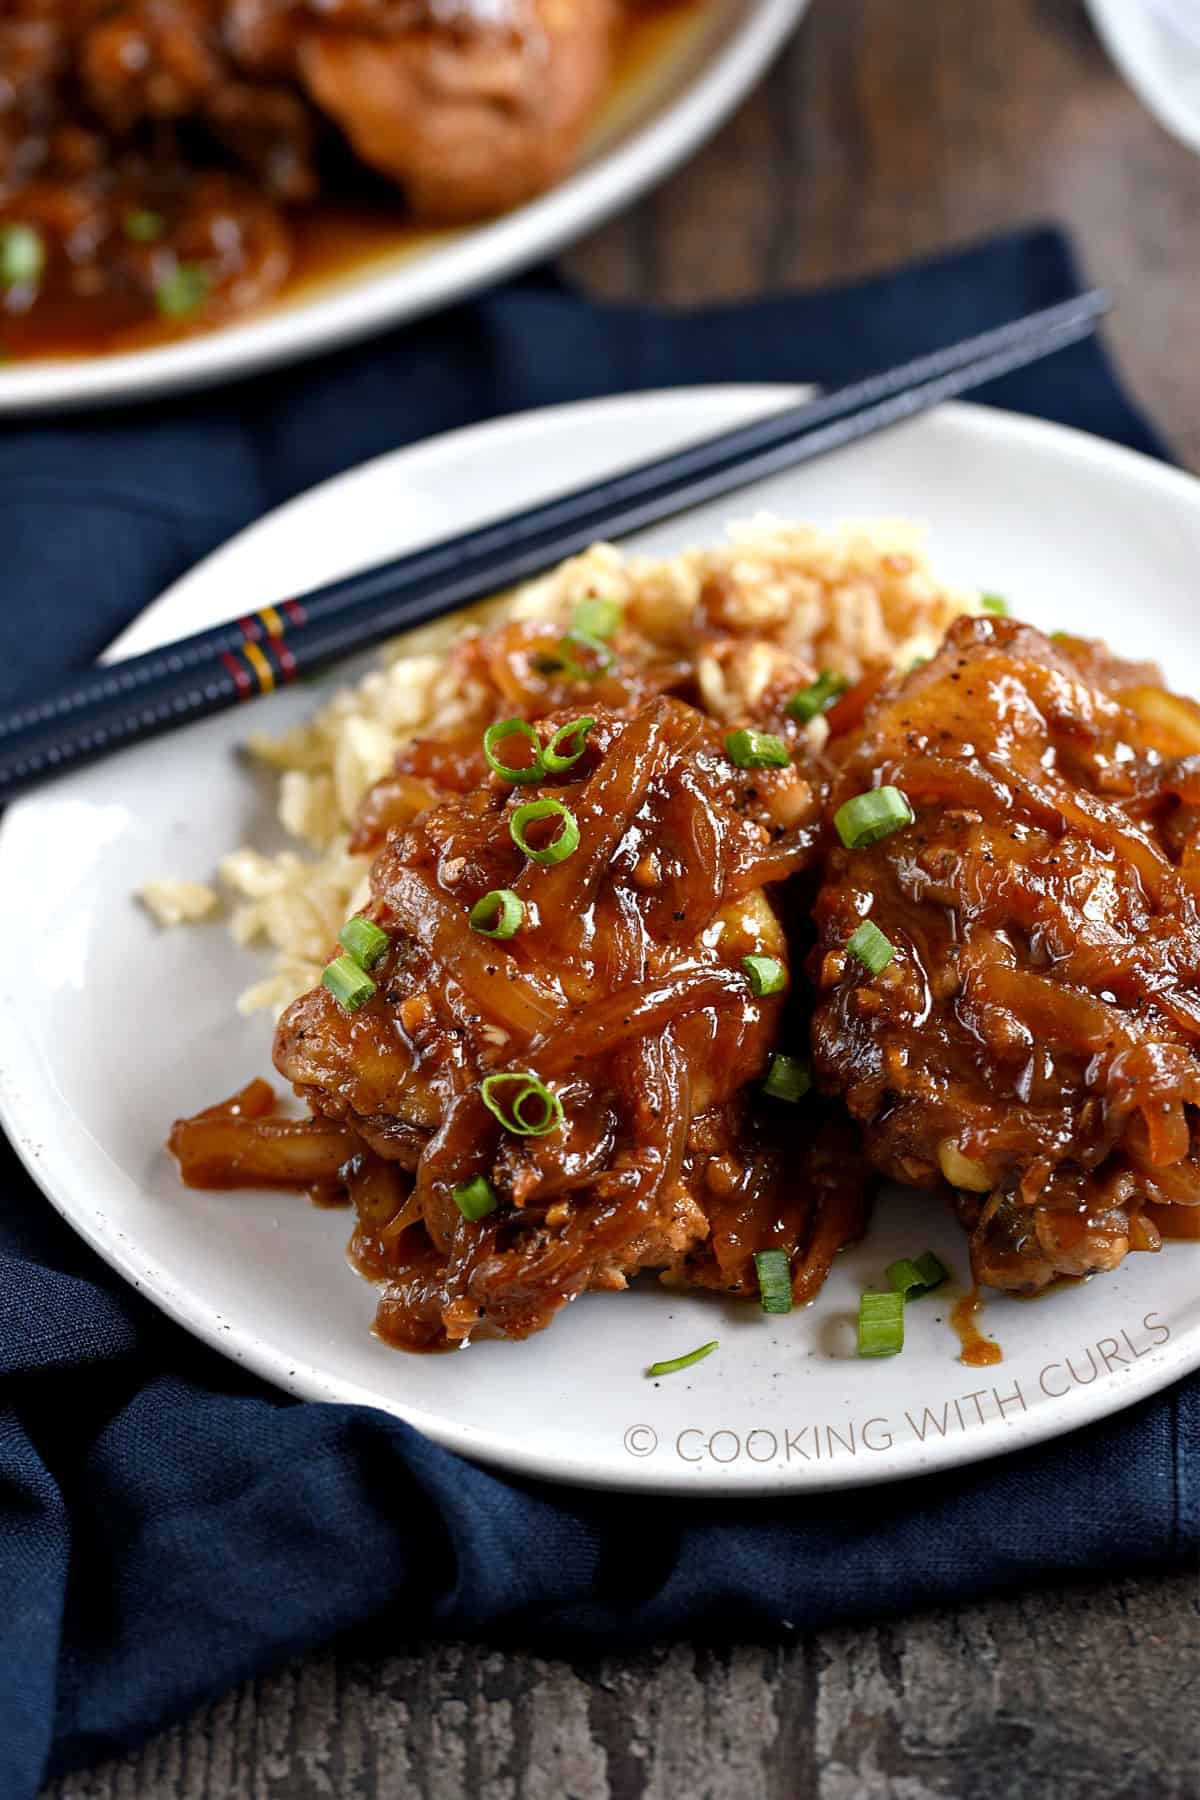 Two chicken thighs covered with a brown onion sauce and diced green onions on a bed of rice with chopsticks in the upper left corner of the plate.